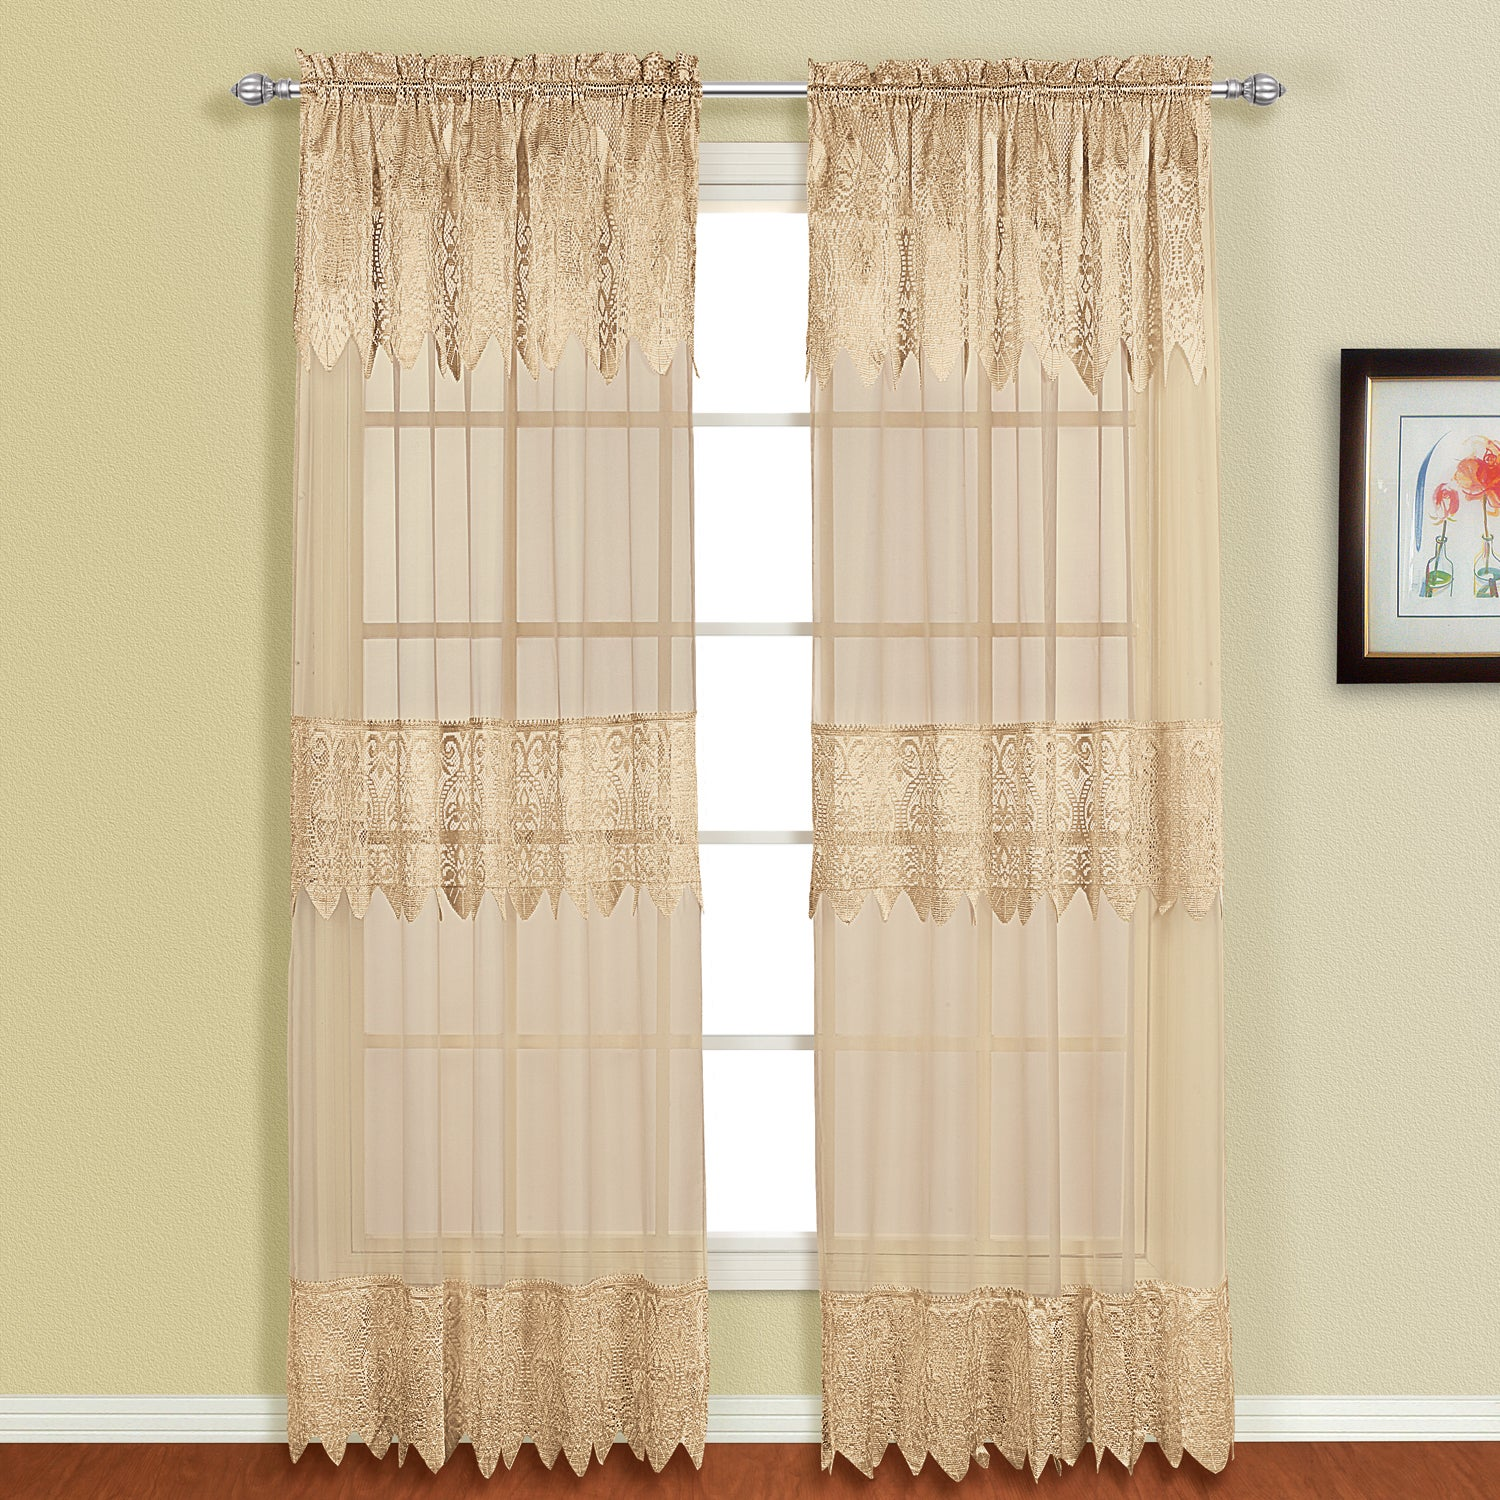 panel blush pin window sheer bedrooms white curtains or prefab curtain voile and